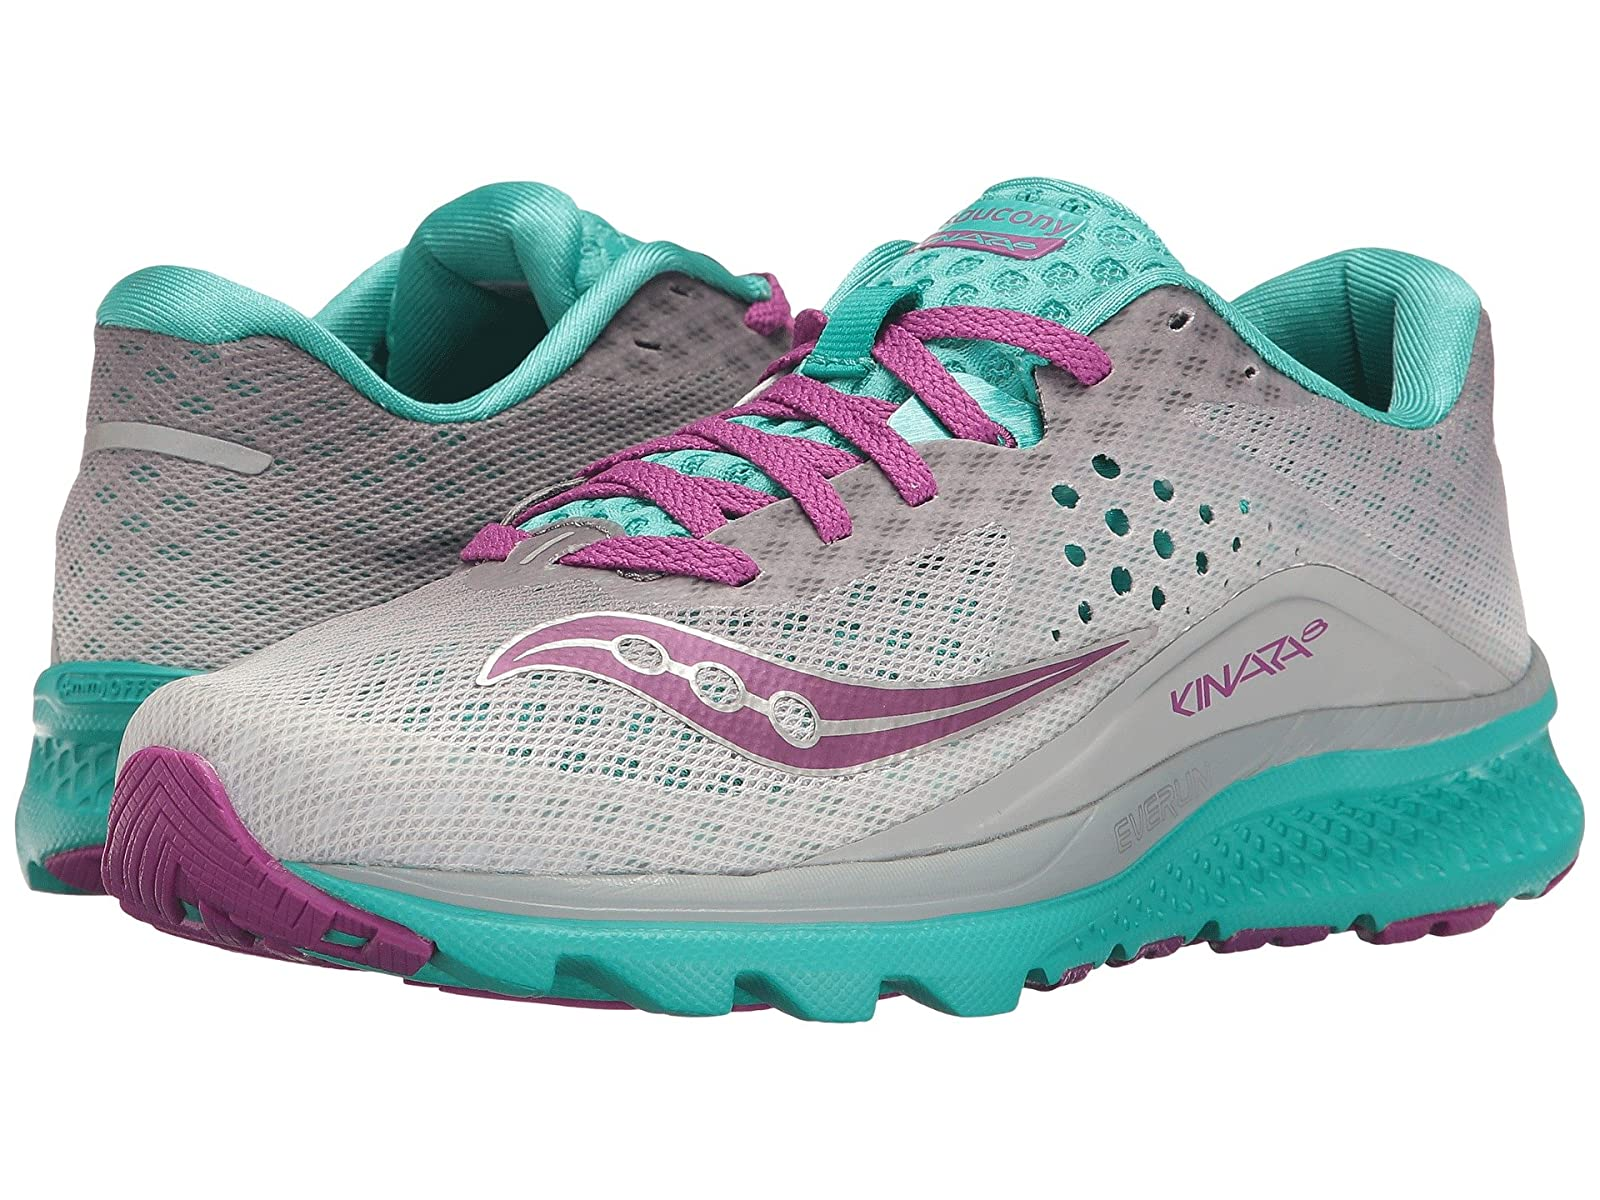 Saucony Kinvara 8Cheap and distinctive eye-catching shoes